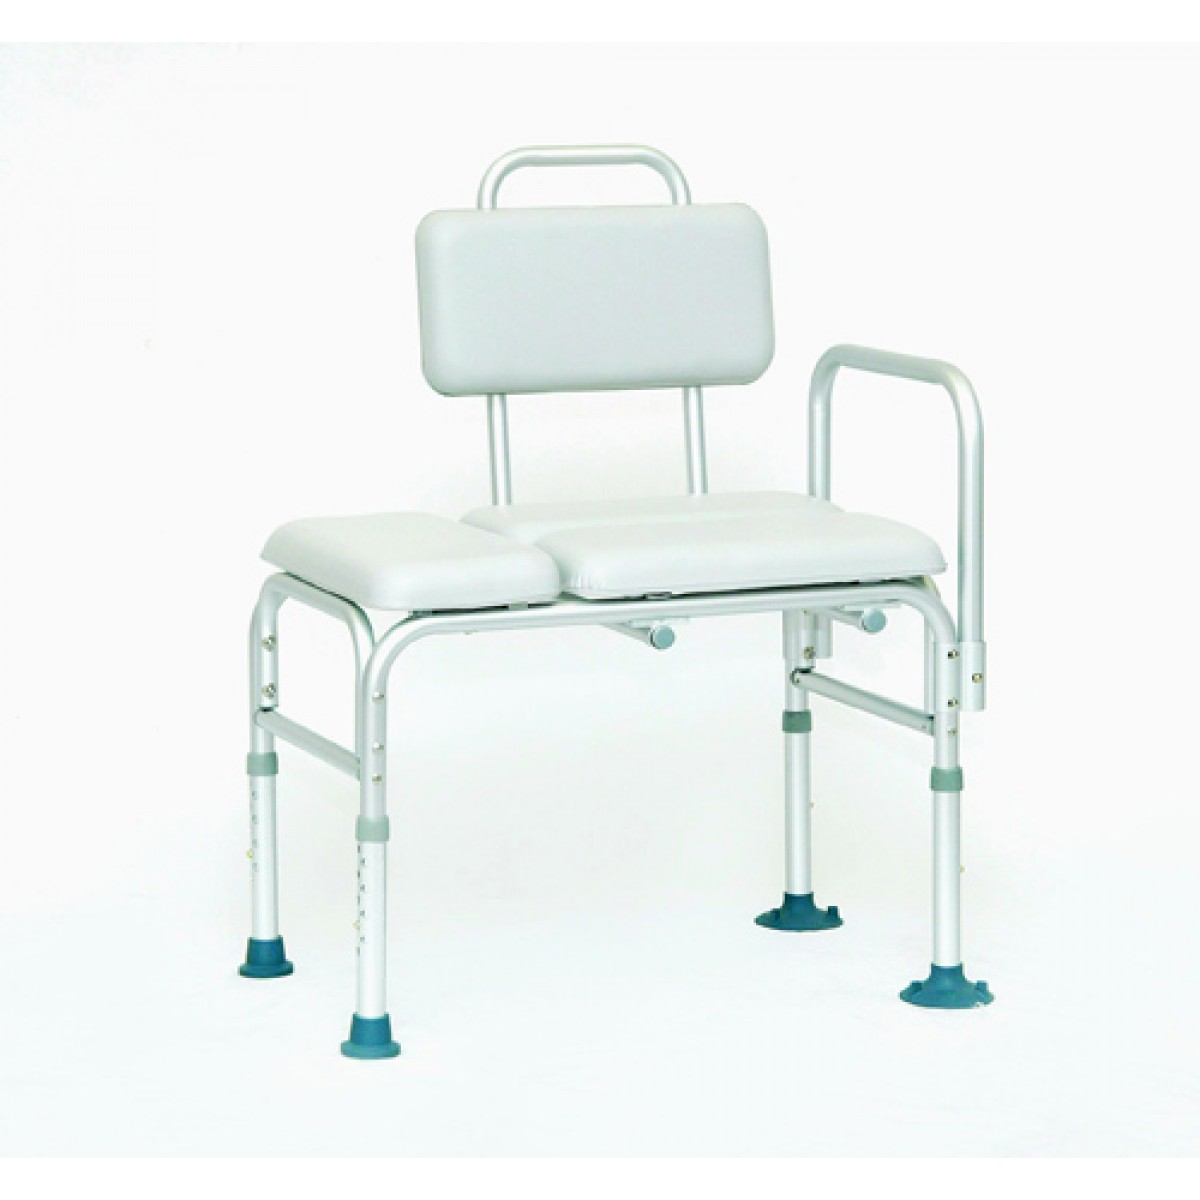 invacare shower chair rail design transfer bench pad with suction feet on sale